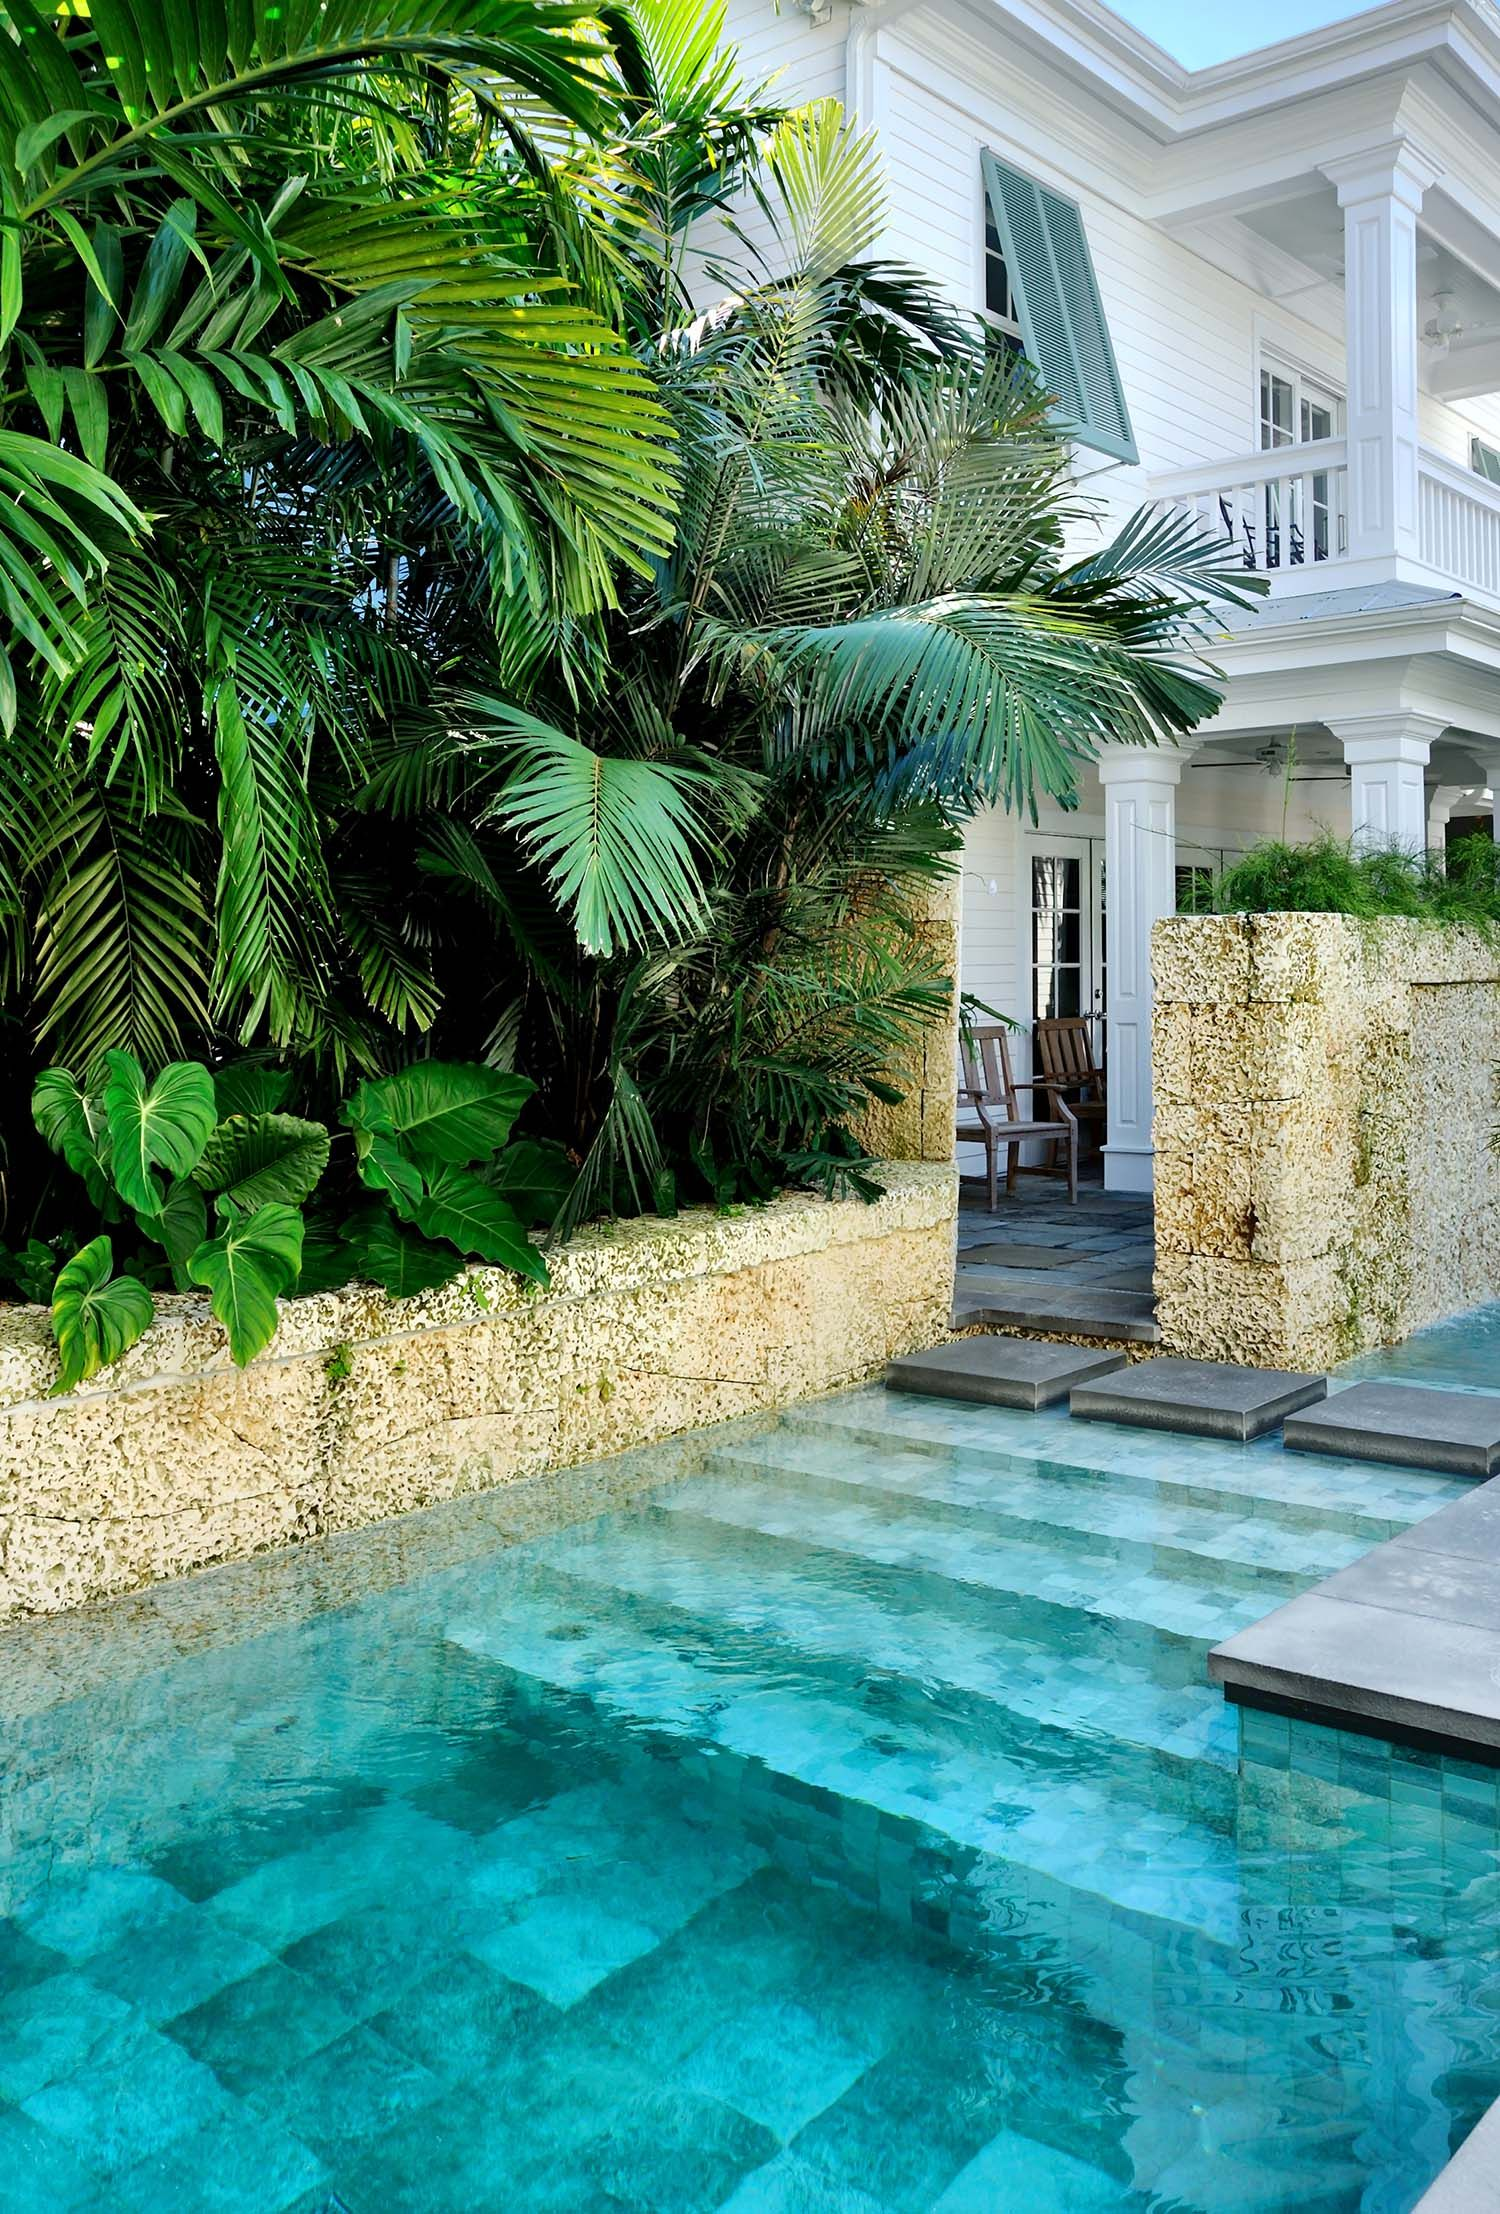 28 Refreshing Plunge Pools That Are Downright Dreamy Pool Houses